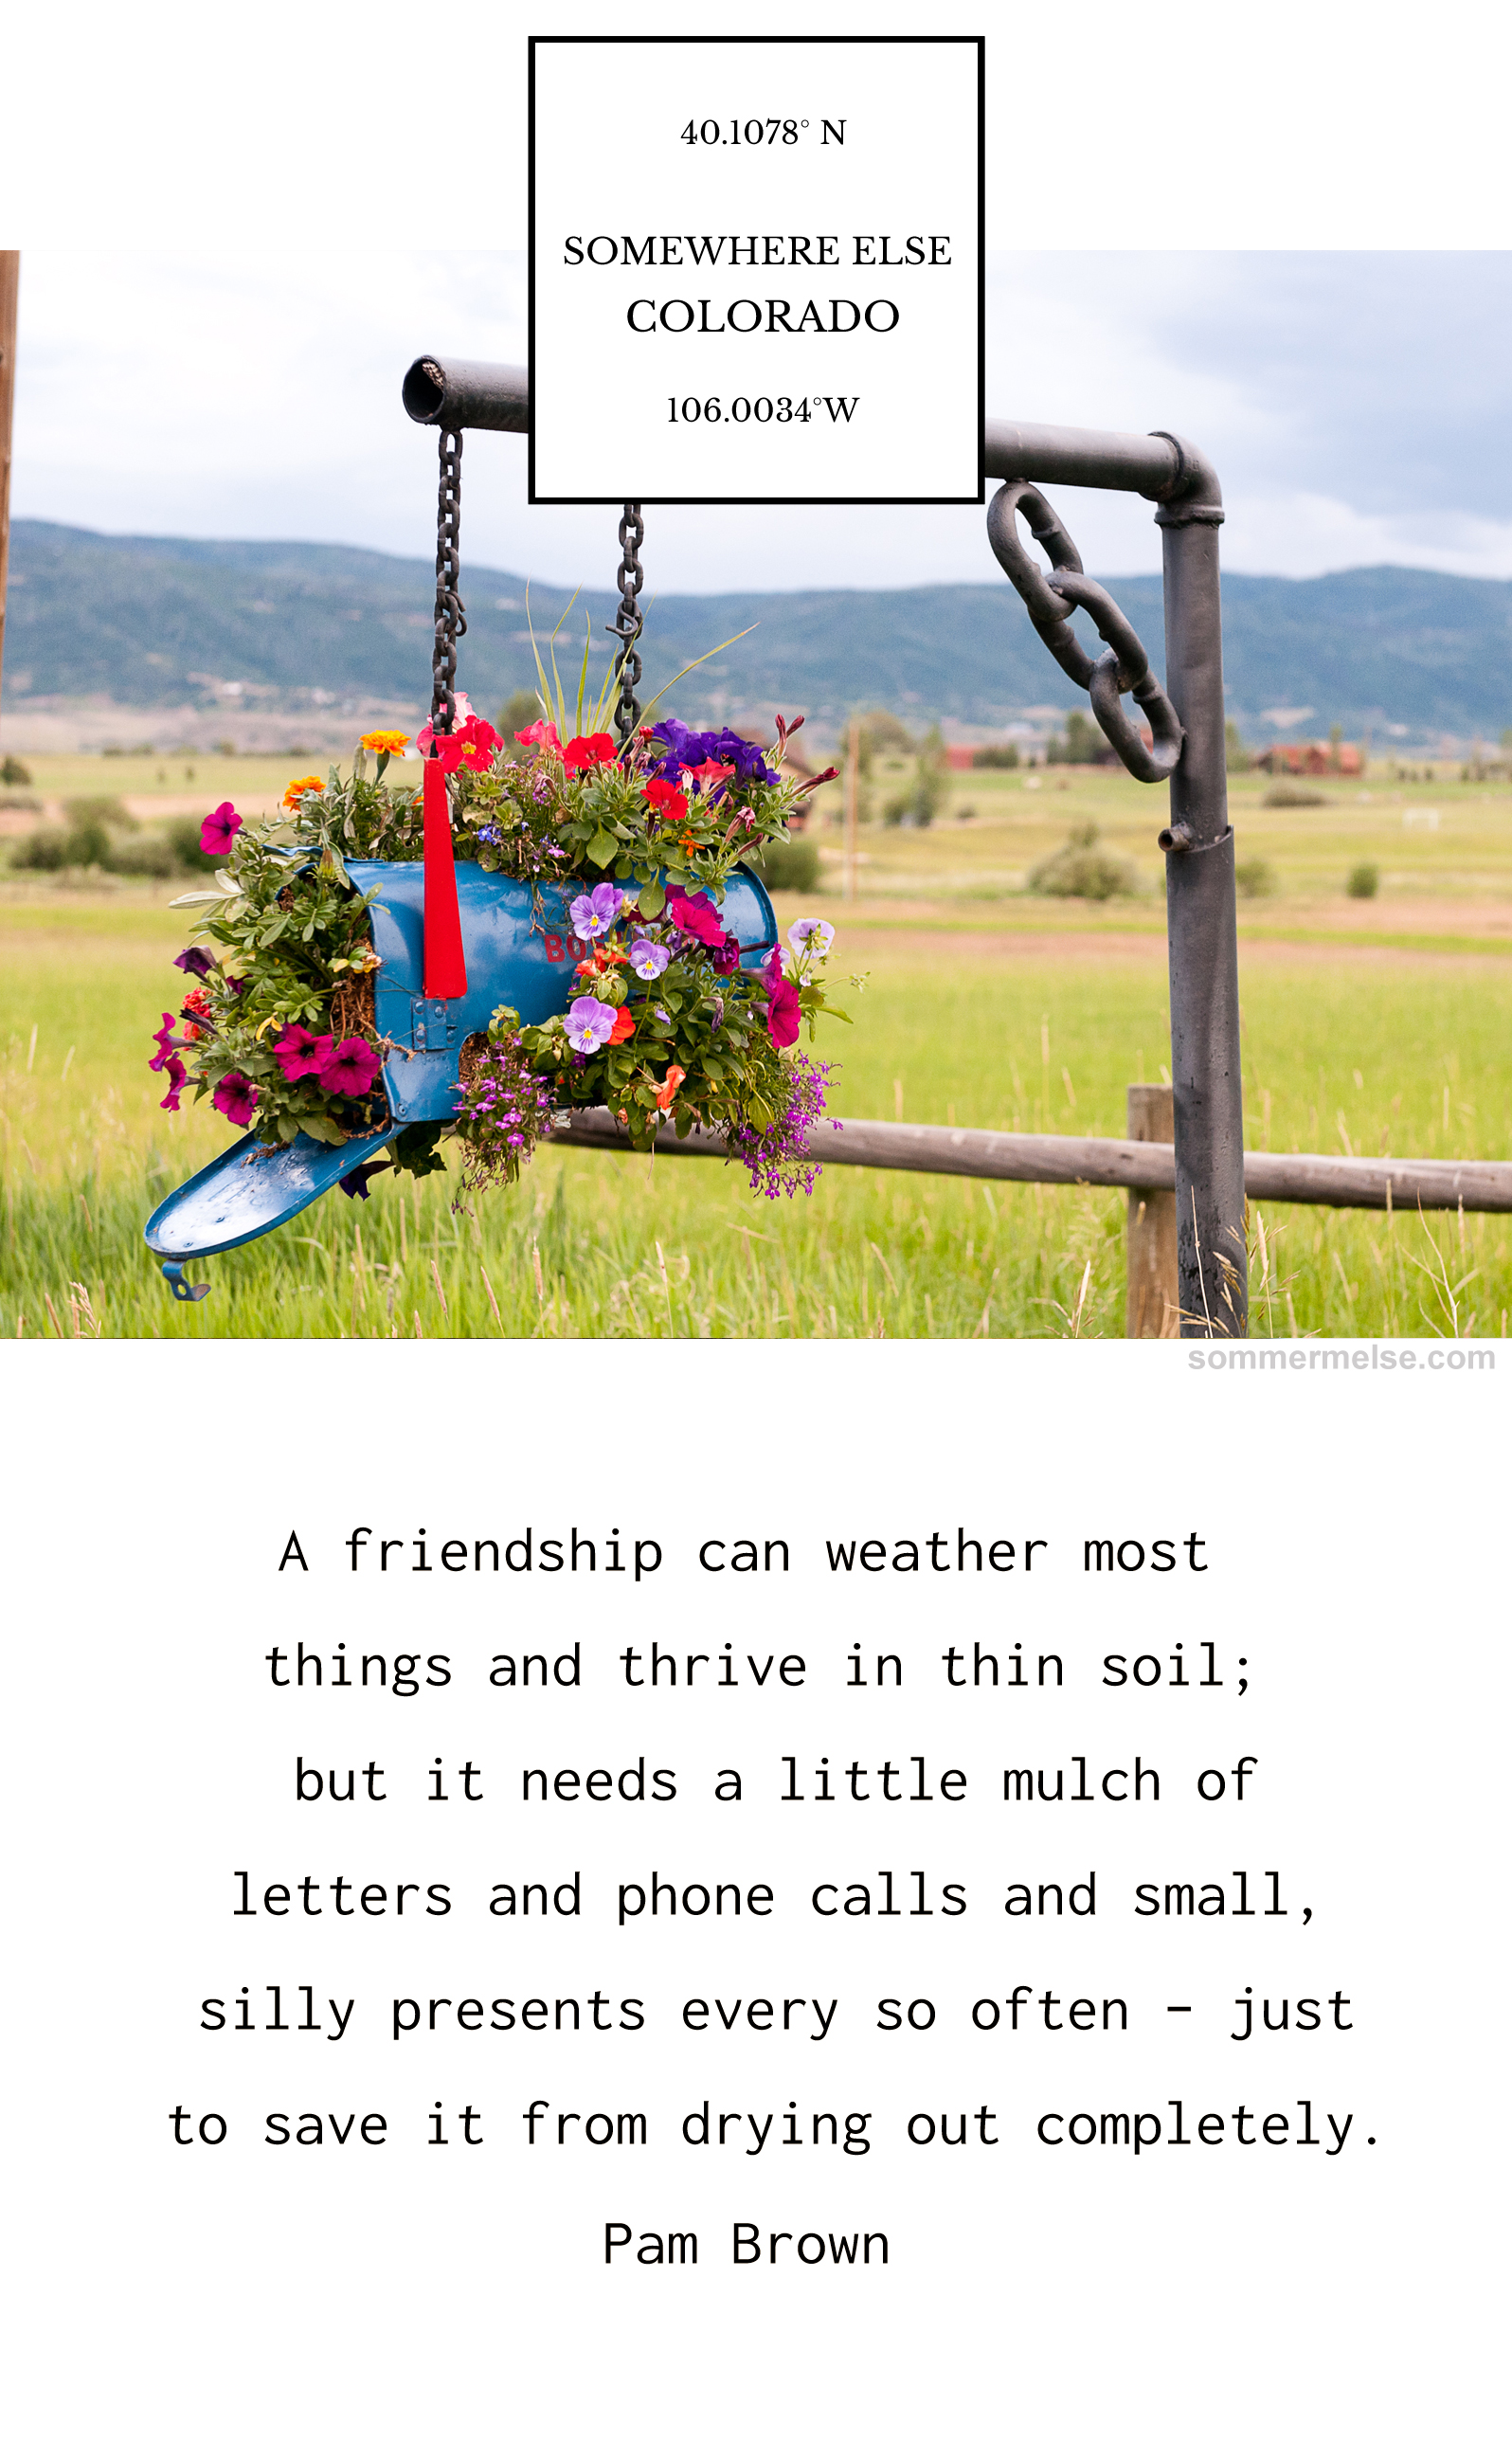 65_finding_wonder_colorado_friendship_letters_quote_pam_brown_colorado